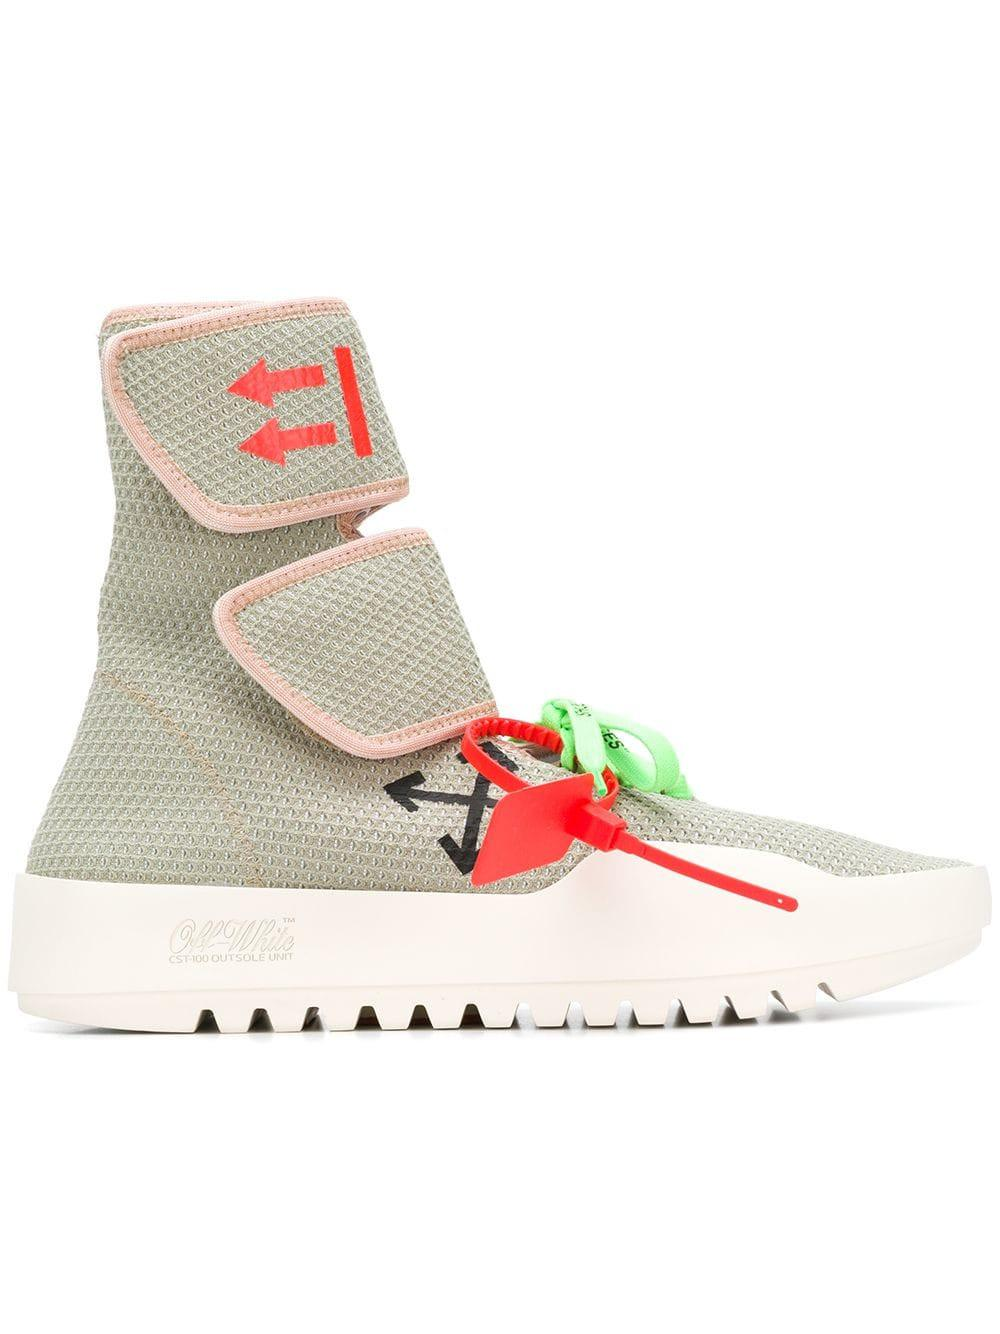 6c5e1467a37d Off-White c o Virgil Abloh Velcro Sneakers for Men - Save 11% - Lyst